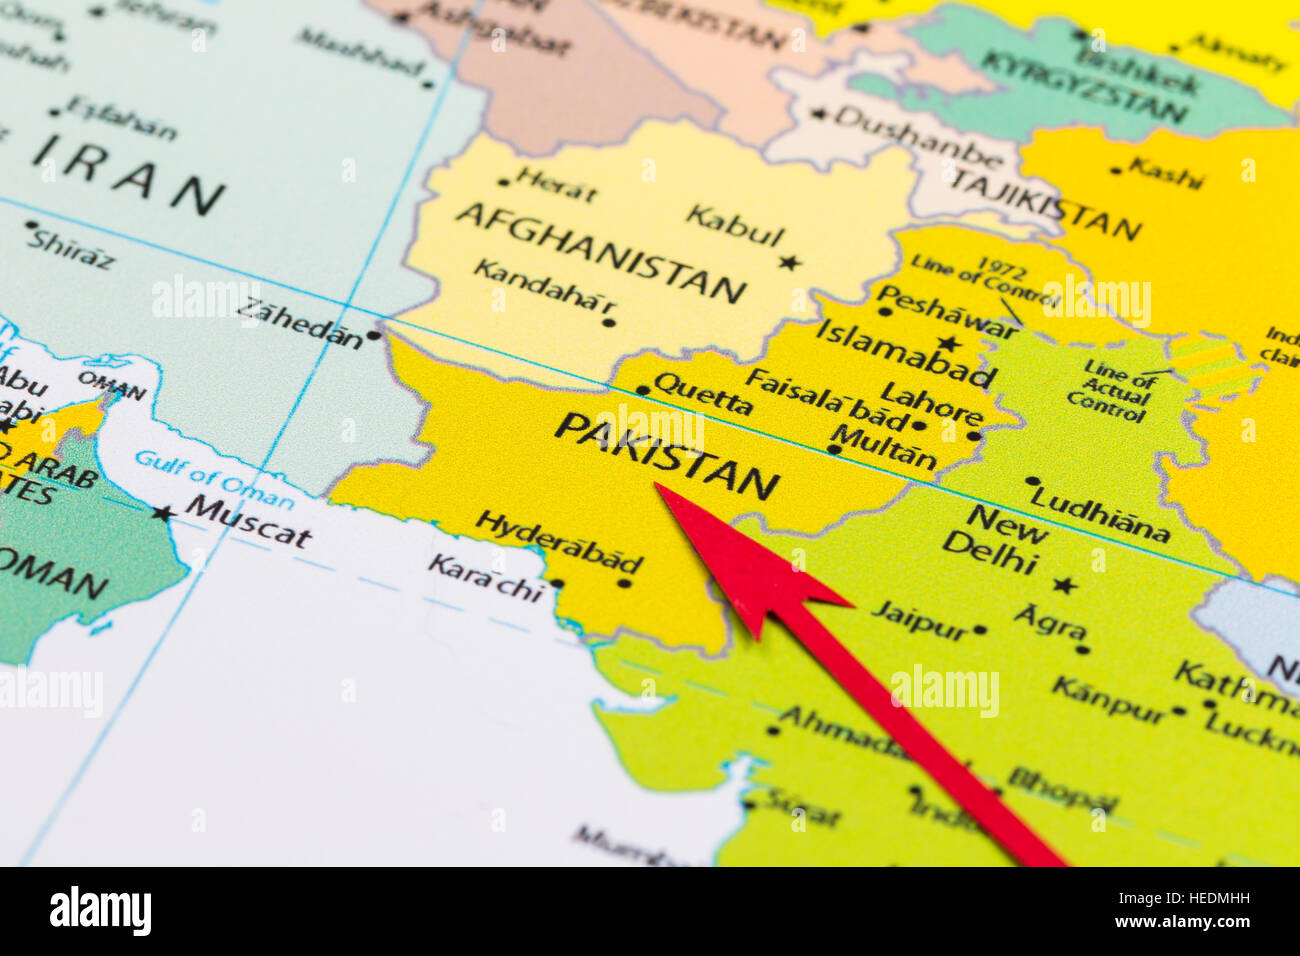 Map Of Asia Karachi.Red Arrow Pointing Pakistan On The Map Of Asia Continent Stock Photo